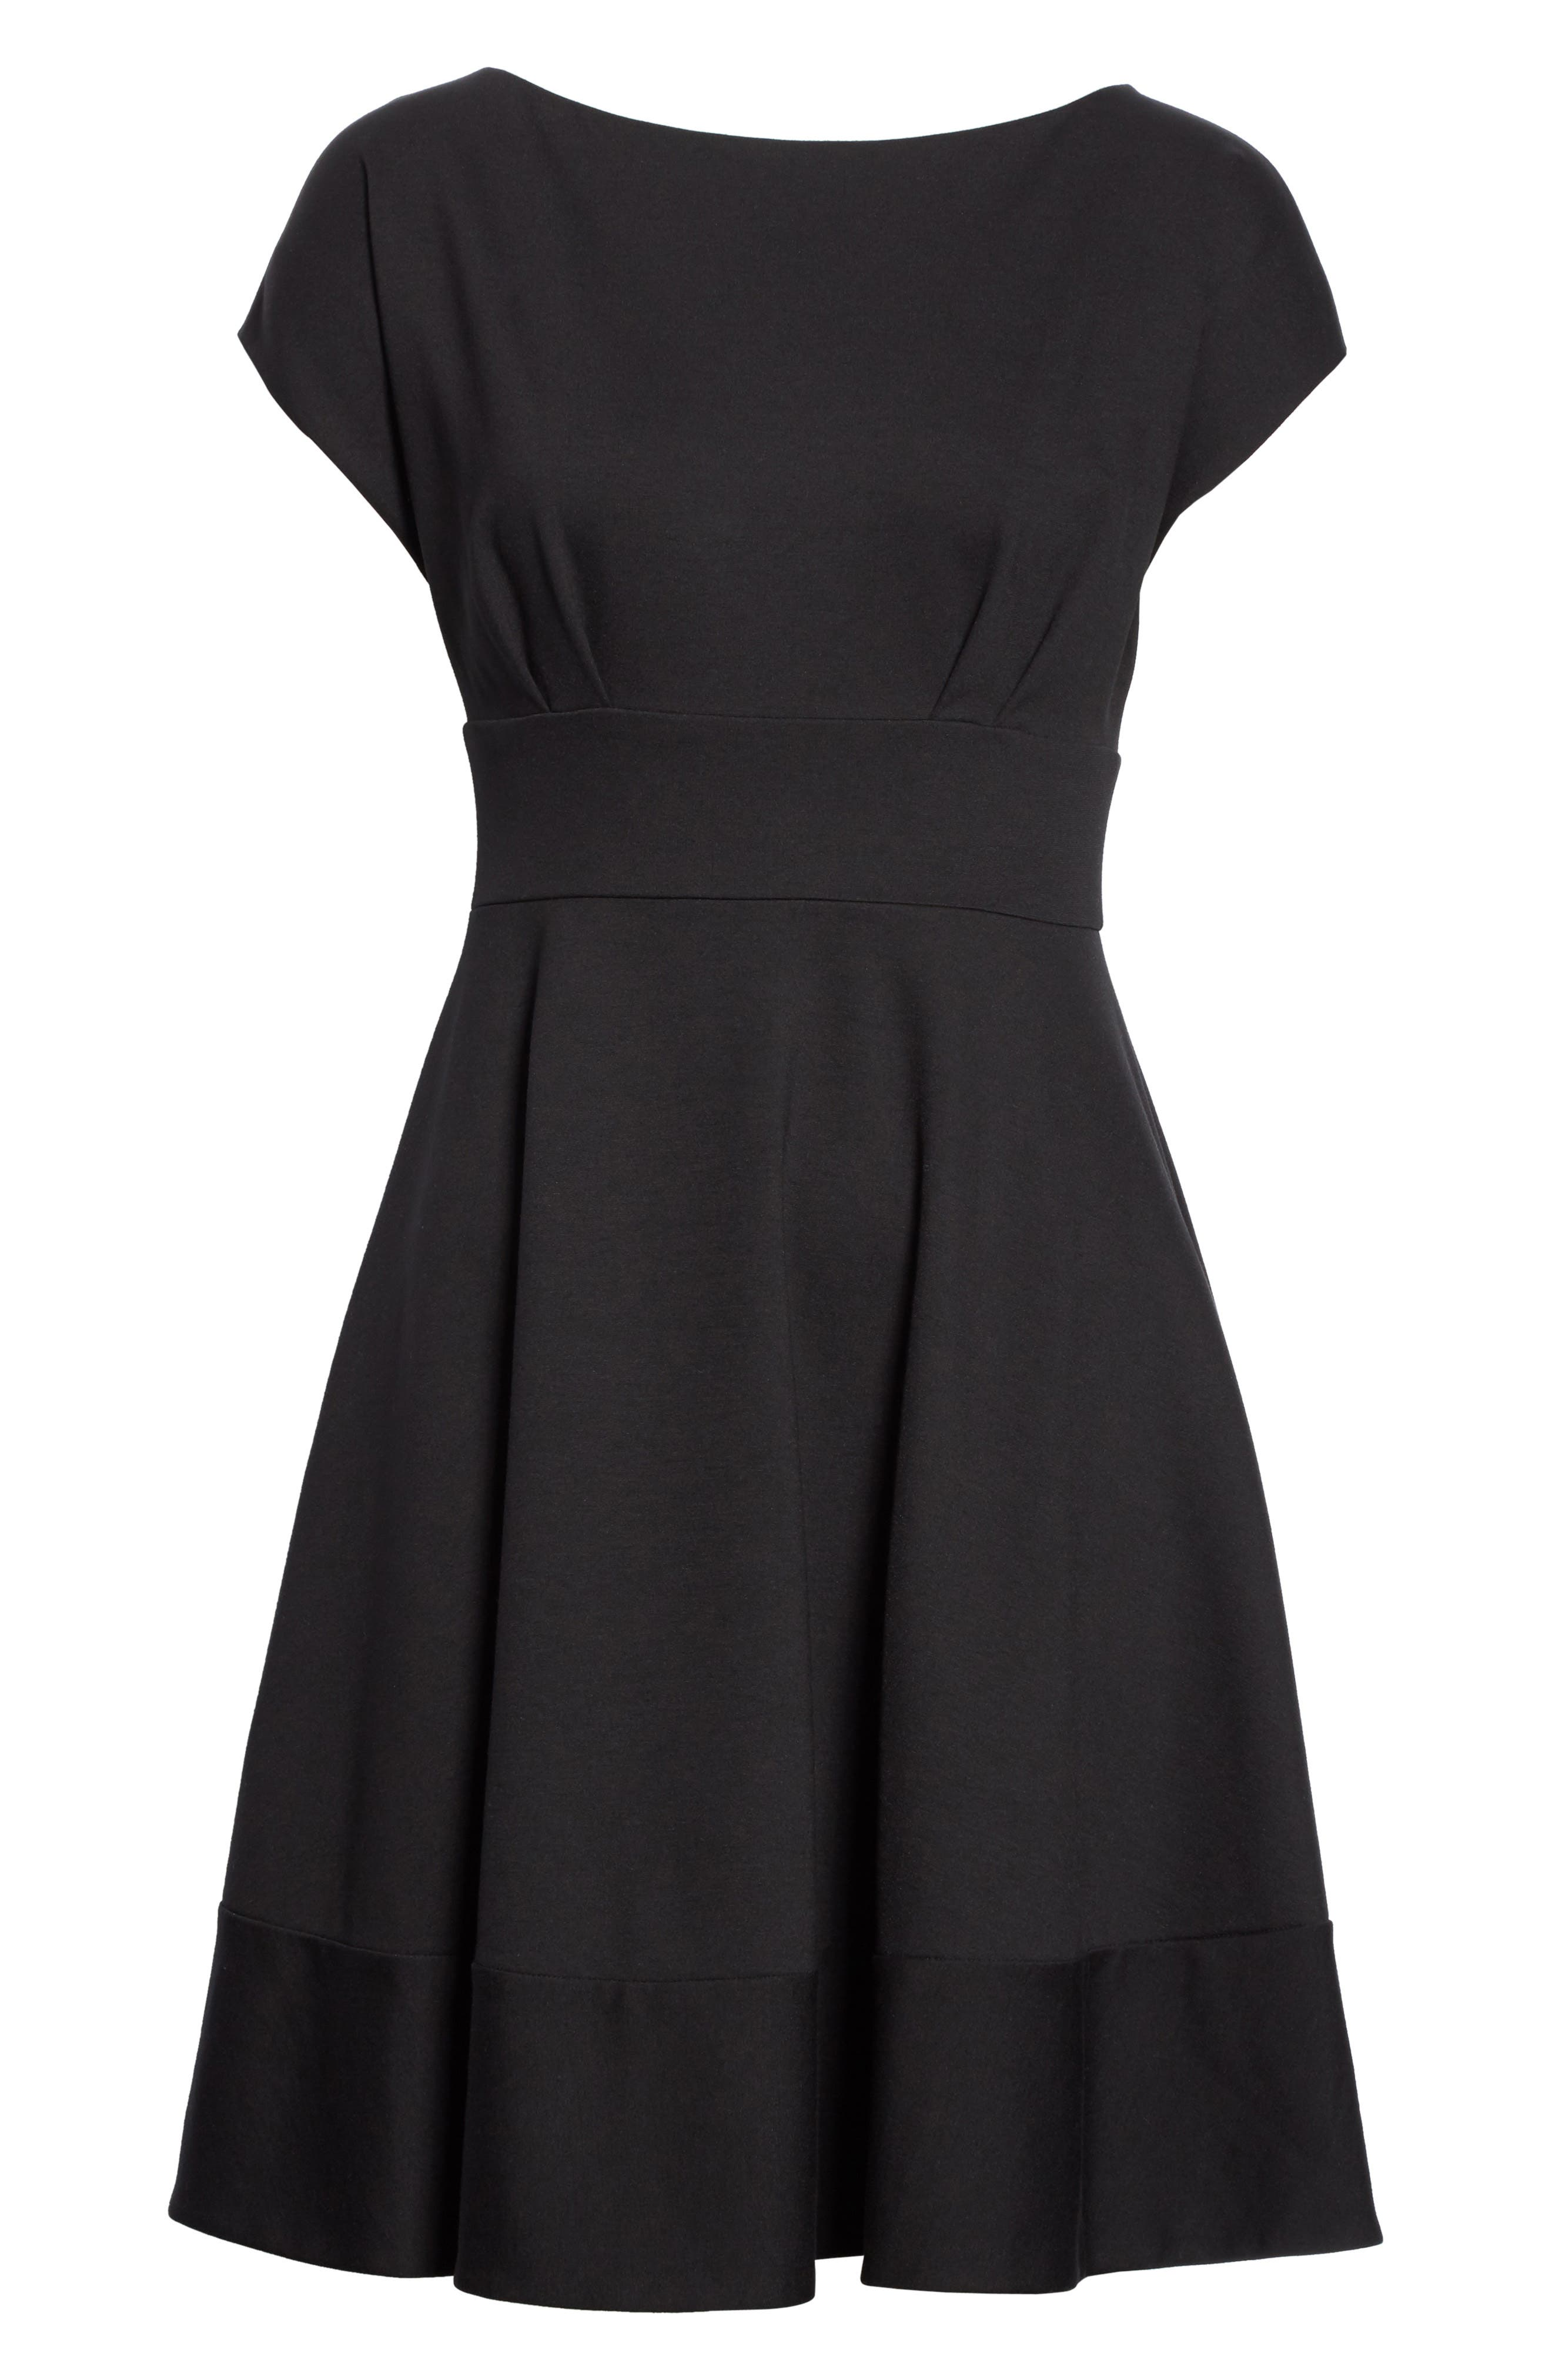 KATE SPADE NEW YORK, ponte fiorella fit & flare dress, Alternate thumbnail 7, color, BLACK